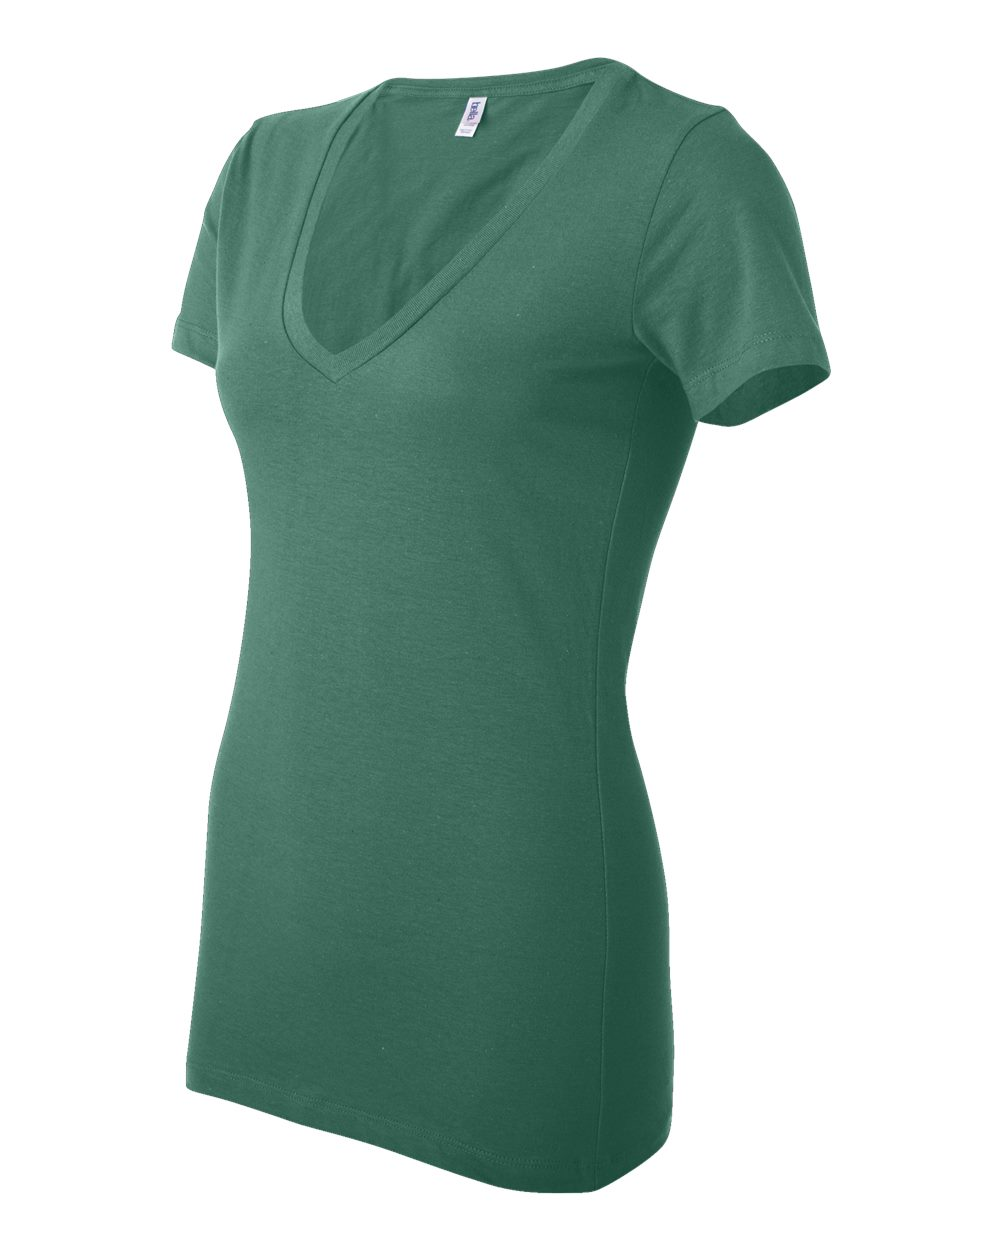 Bella-Canvas-Women-039-s-Jersey-Short-Sleeve-Deep-V-Neck-T-Shirt-B6035-S-2XL thumbnail 75